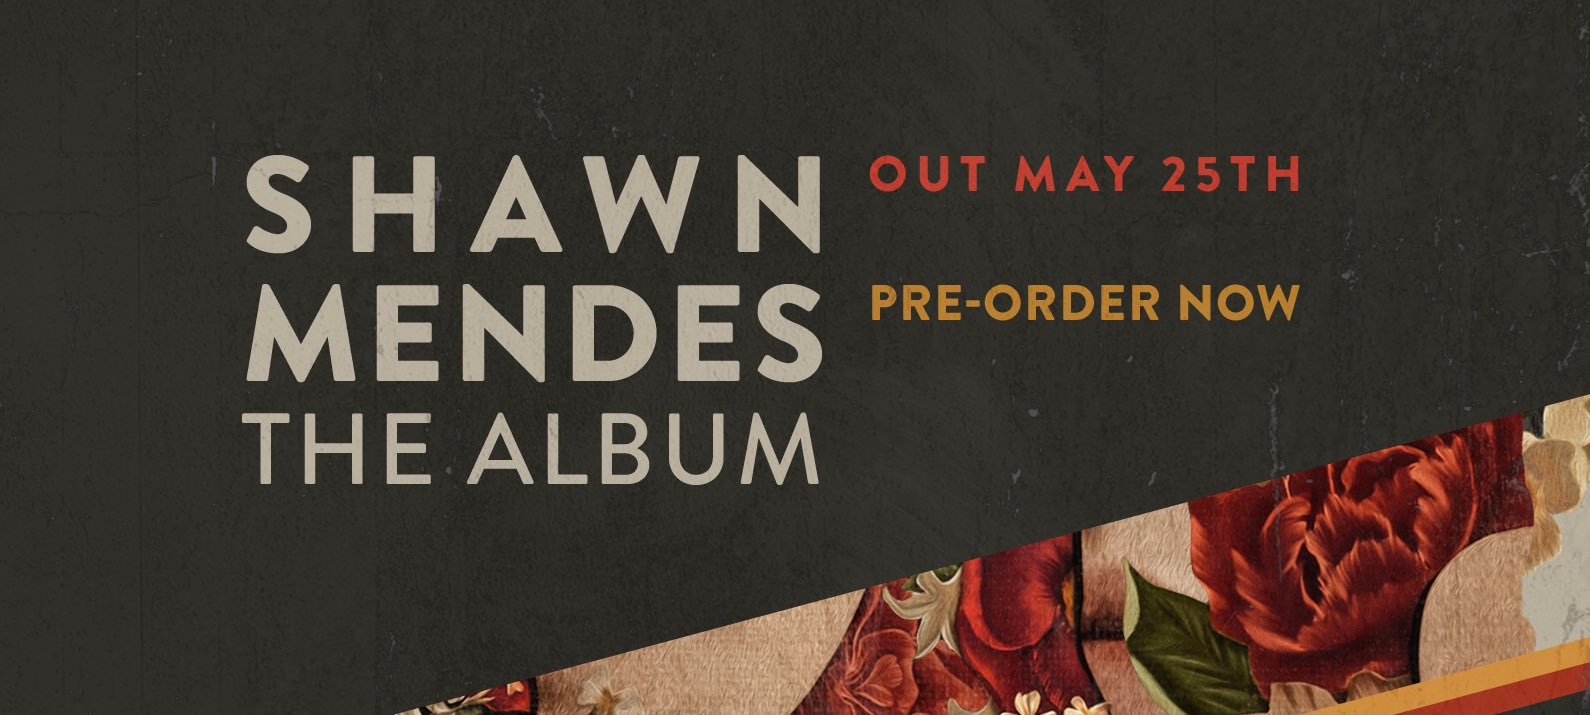 #ShawnMendesTheAlbum 5/25 https://t.co/raYGOCMsiI https://t.co/WHEUic1zYg